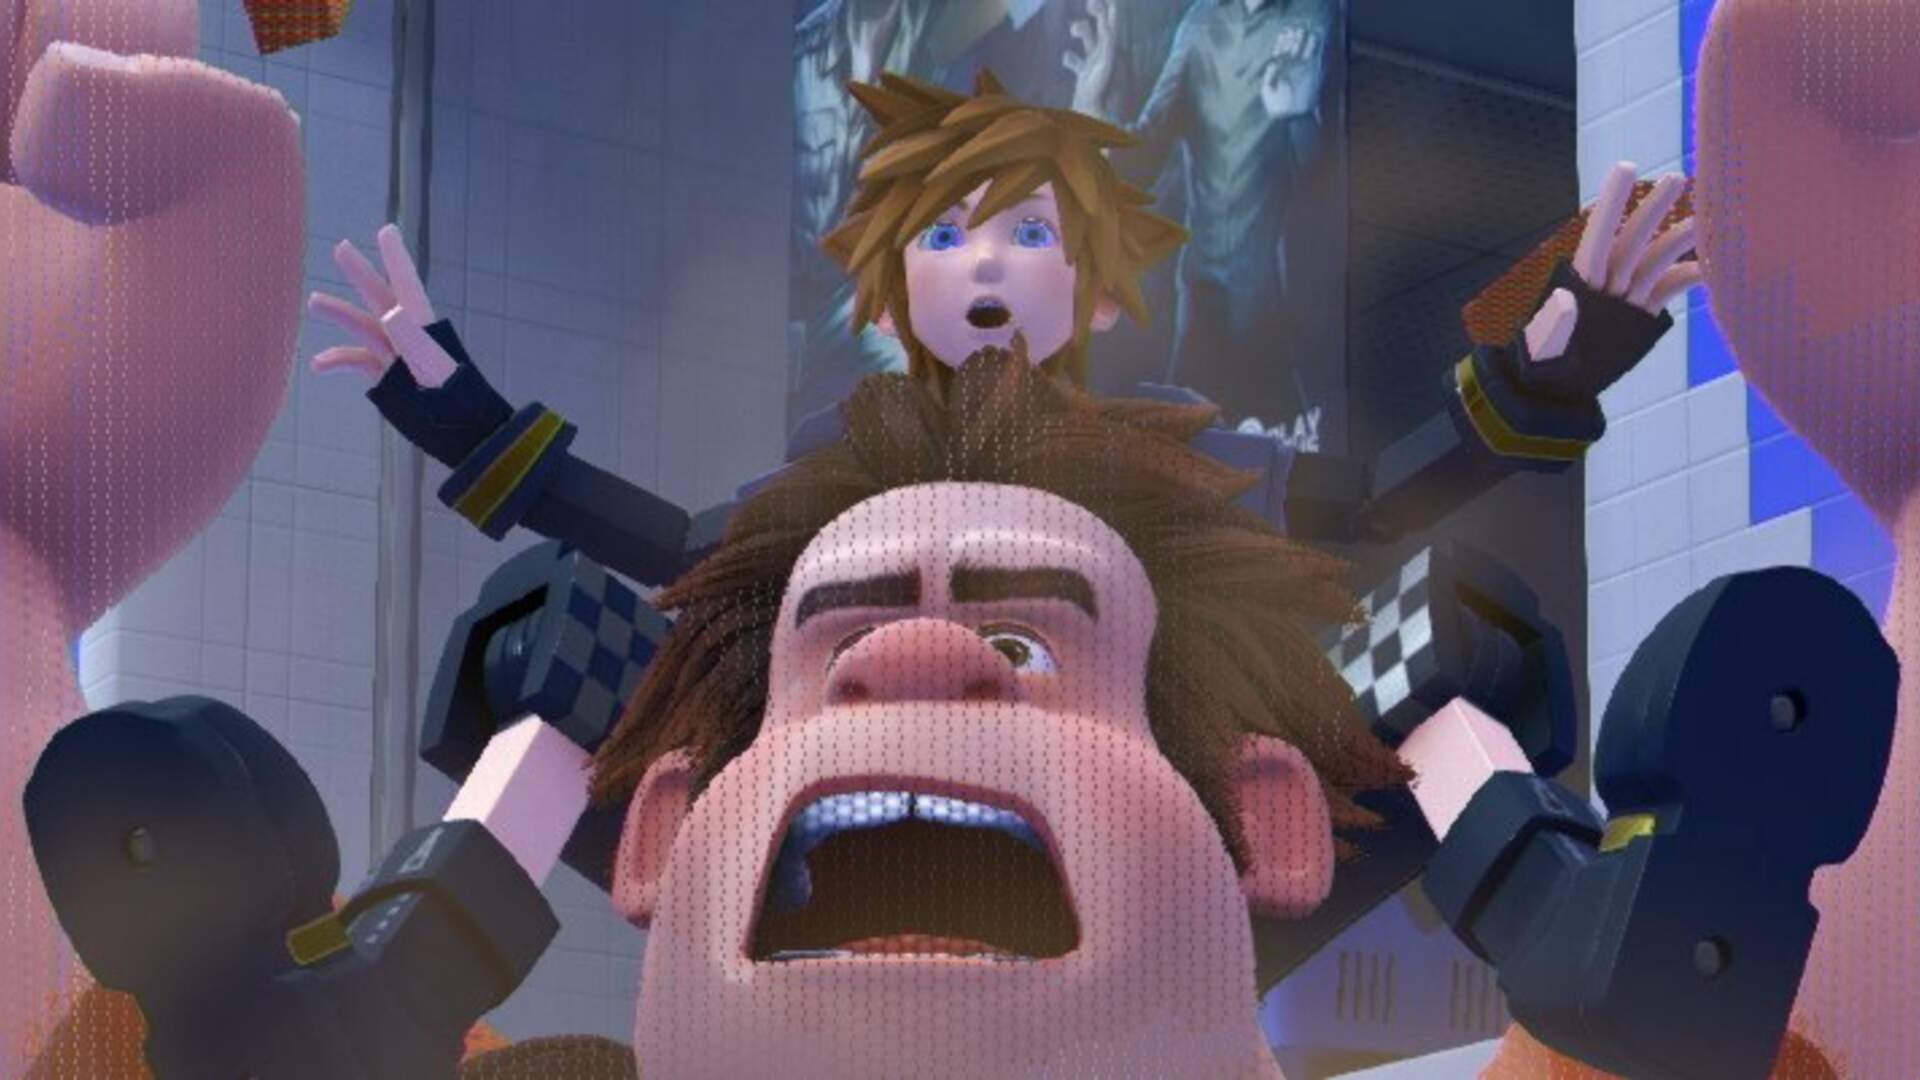 Kingdom Hearts 3 Special Editions Revealed, Don't Look Terra-ble